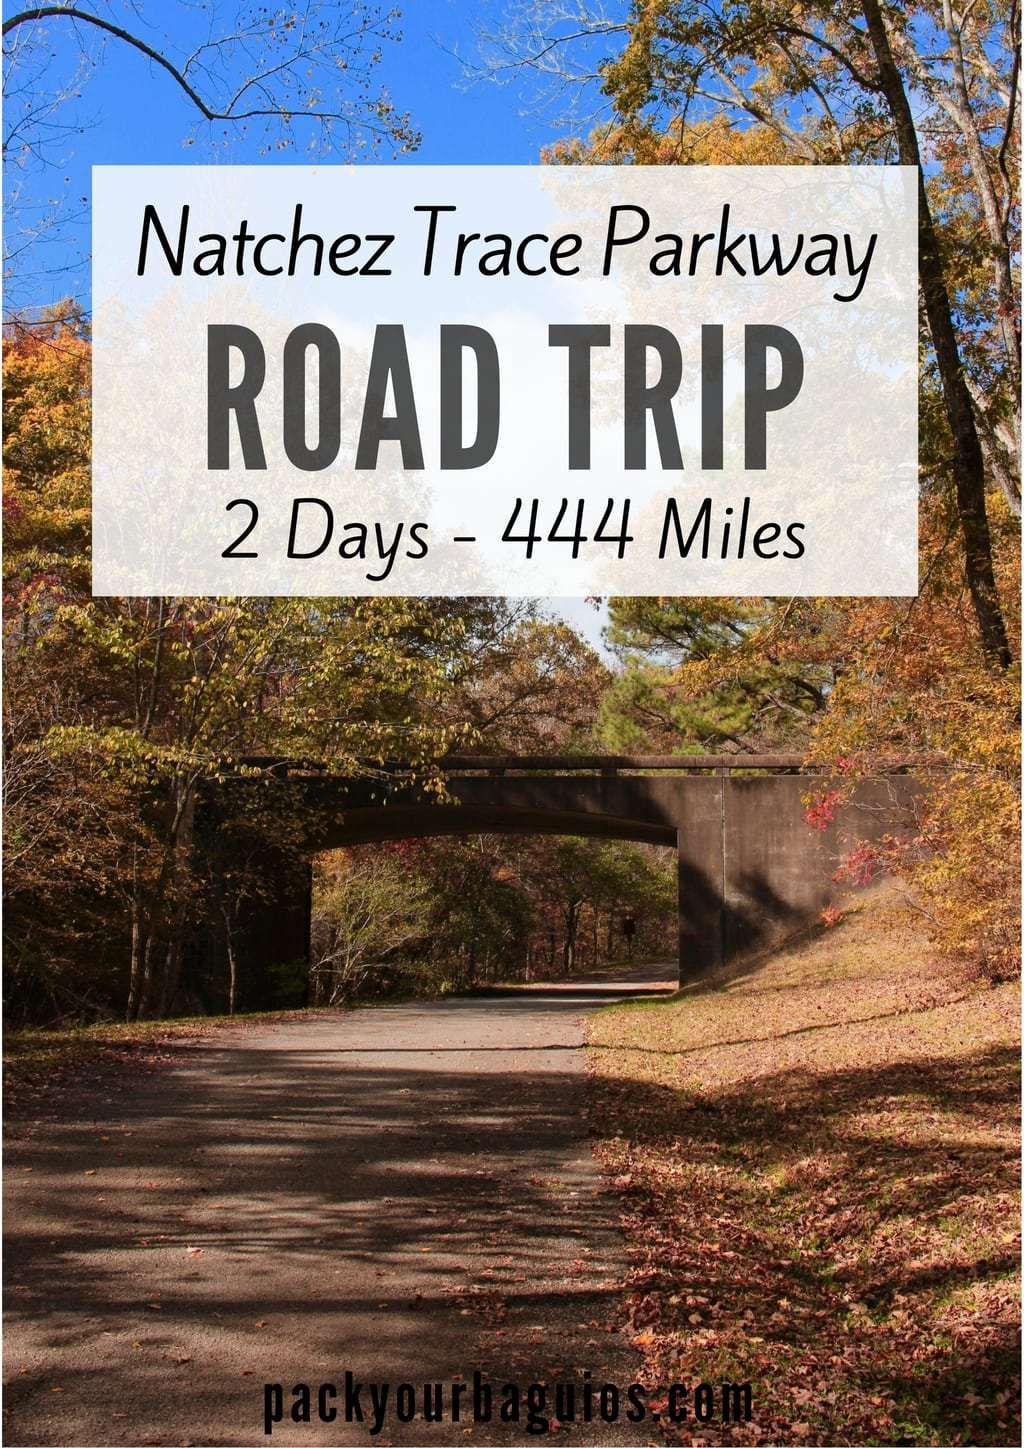 Natchez Trace Parkway Road Trip Road trip usa, Us road